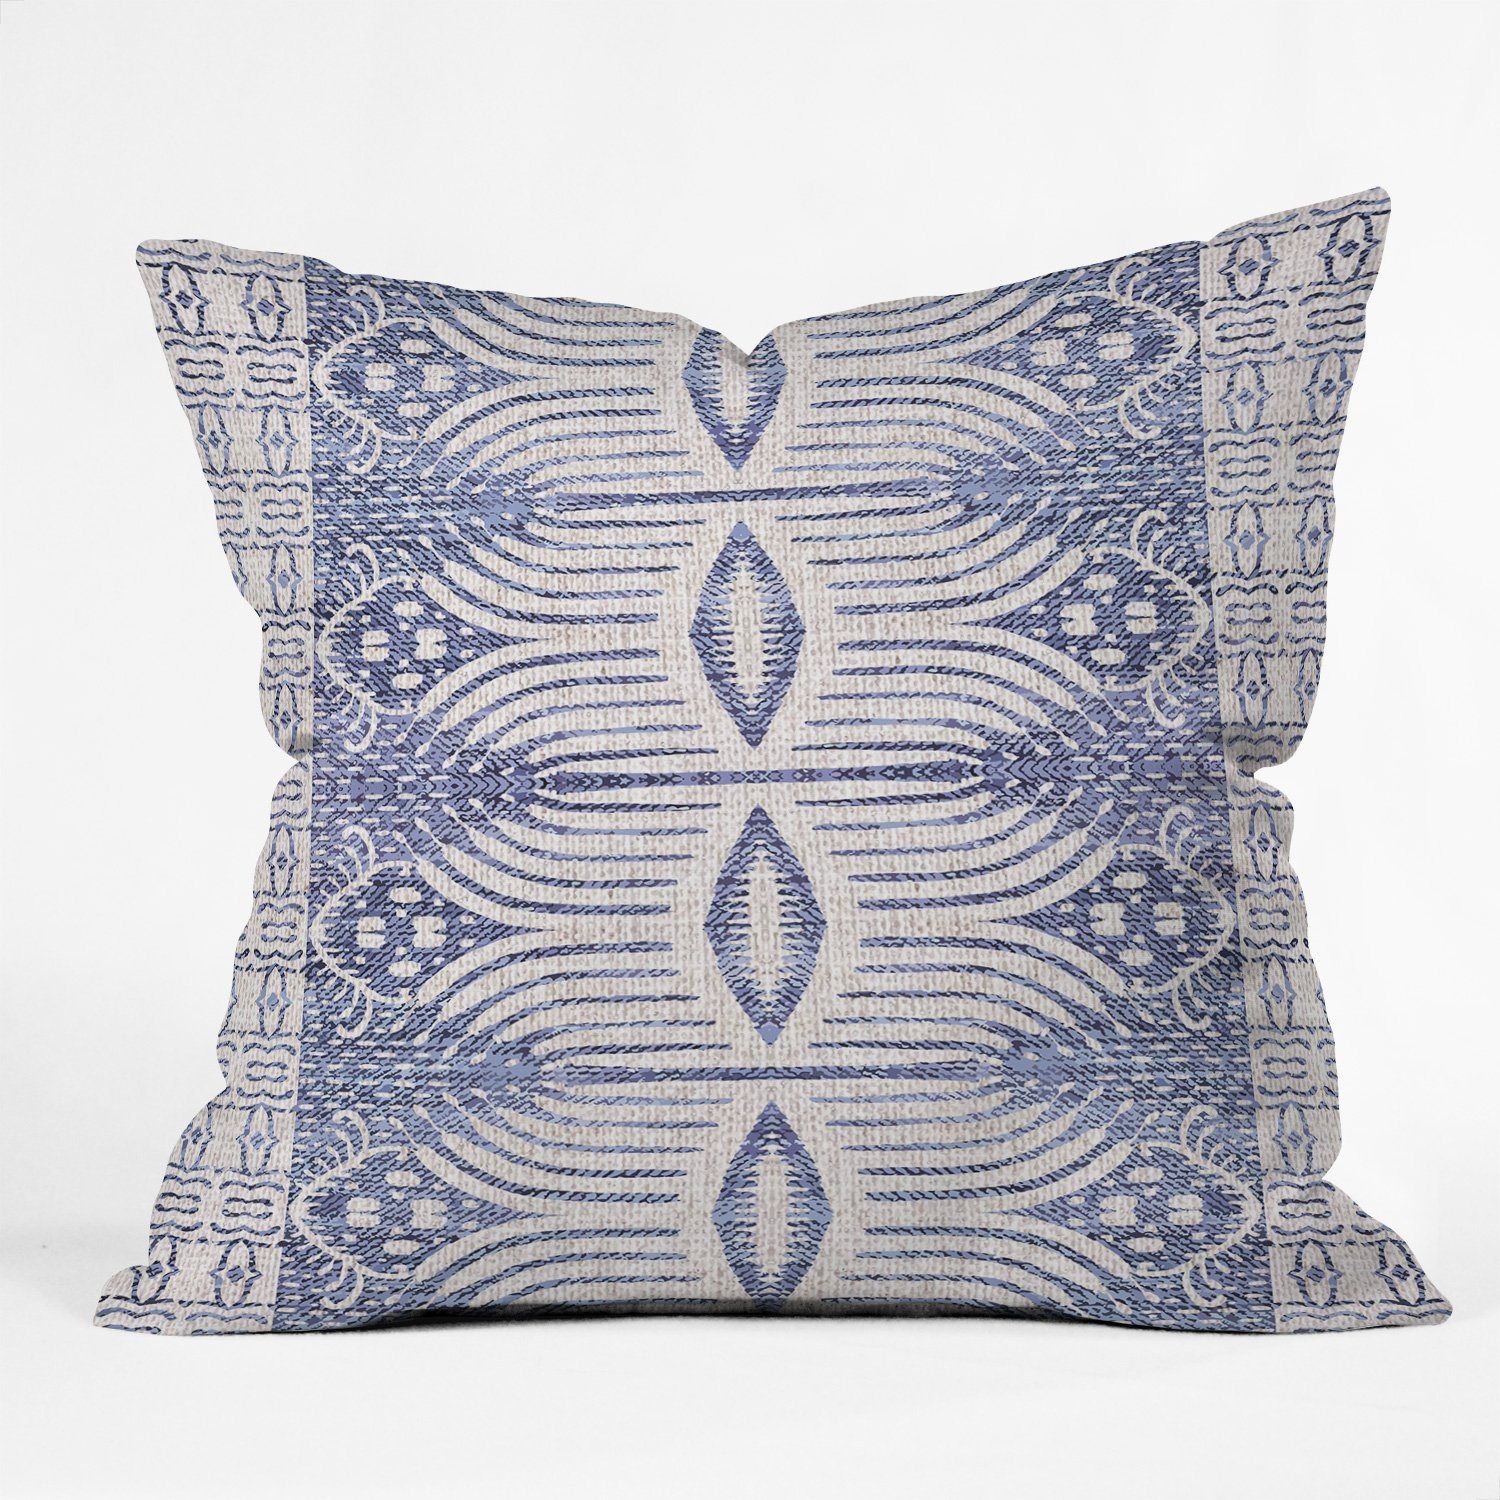 FRENCH LINEN TRIBAL IKAT Pillow with Insert